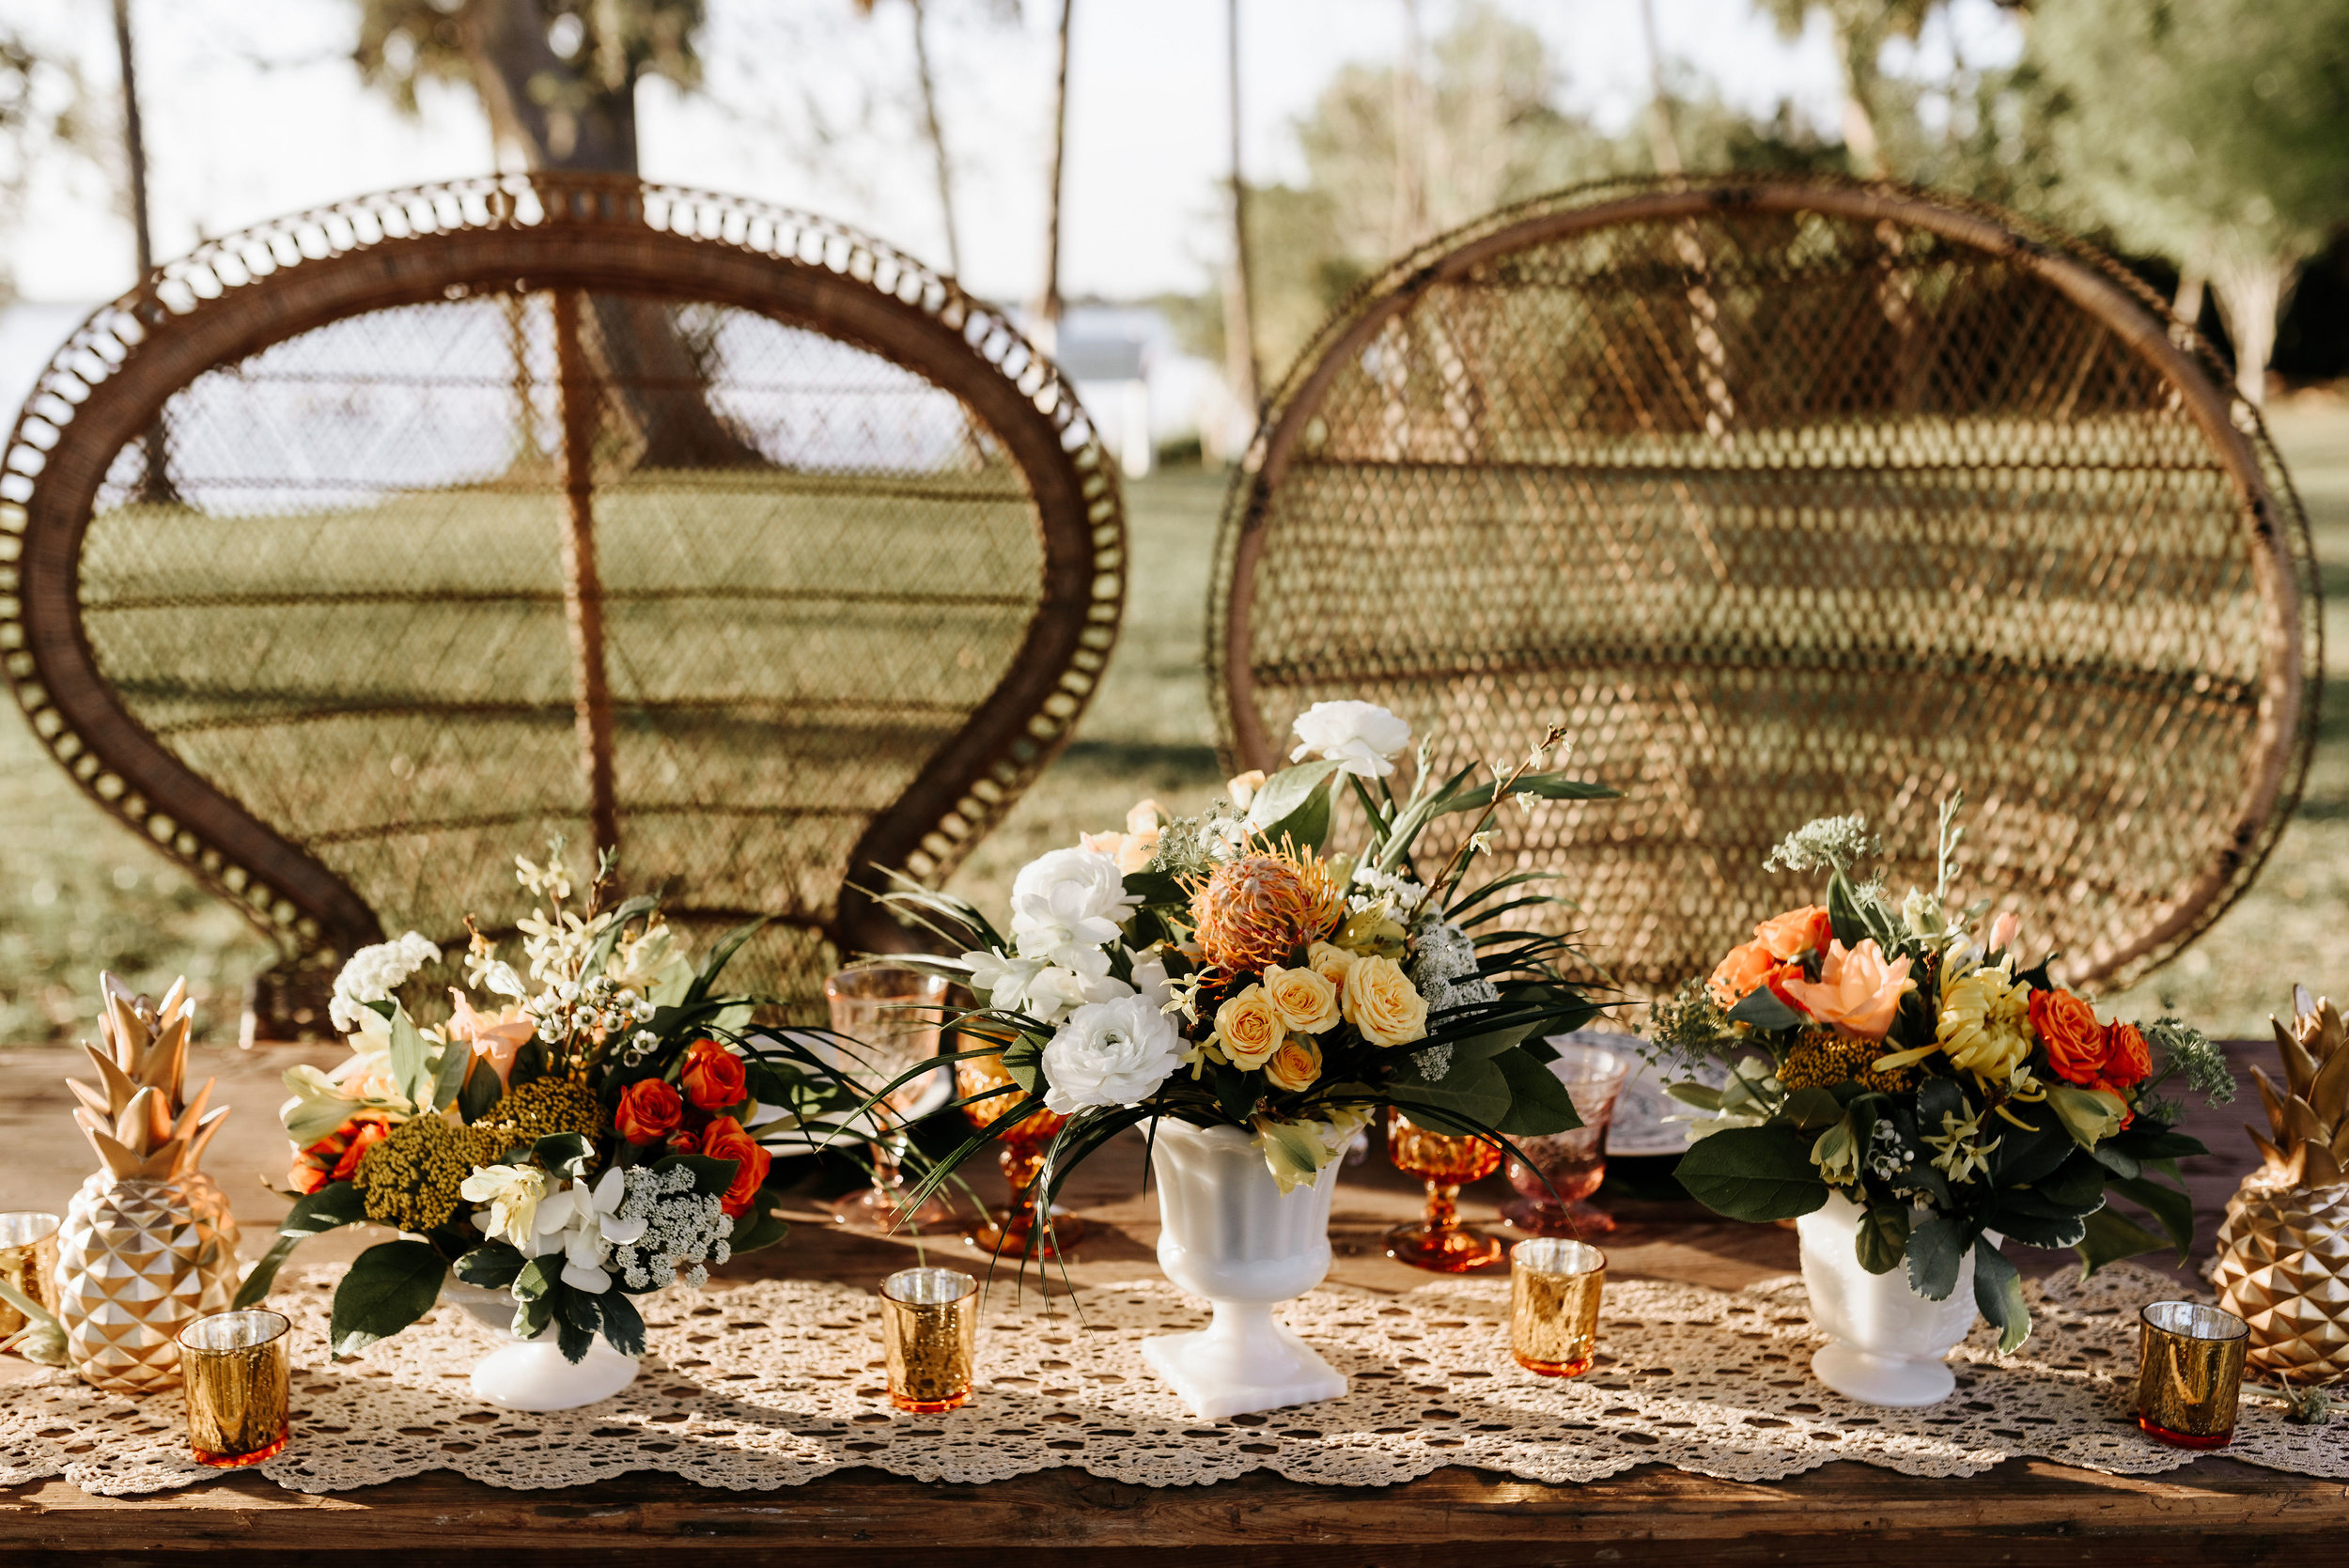 Field_Manor_Wedding_Styled_Shoot_Merritt_Island_Florida_Photography_by_V_1663.jpg